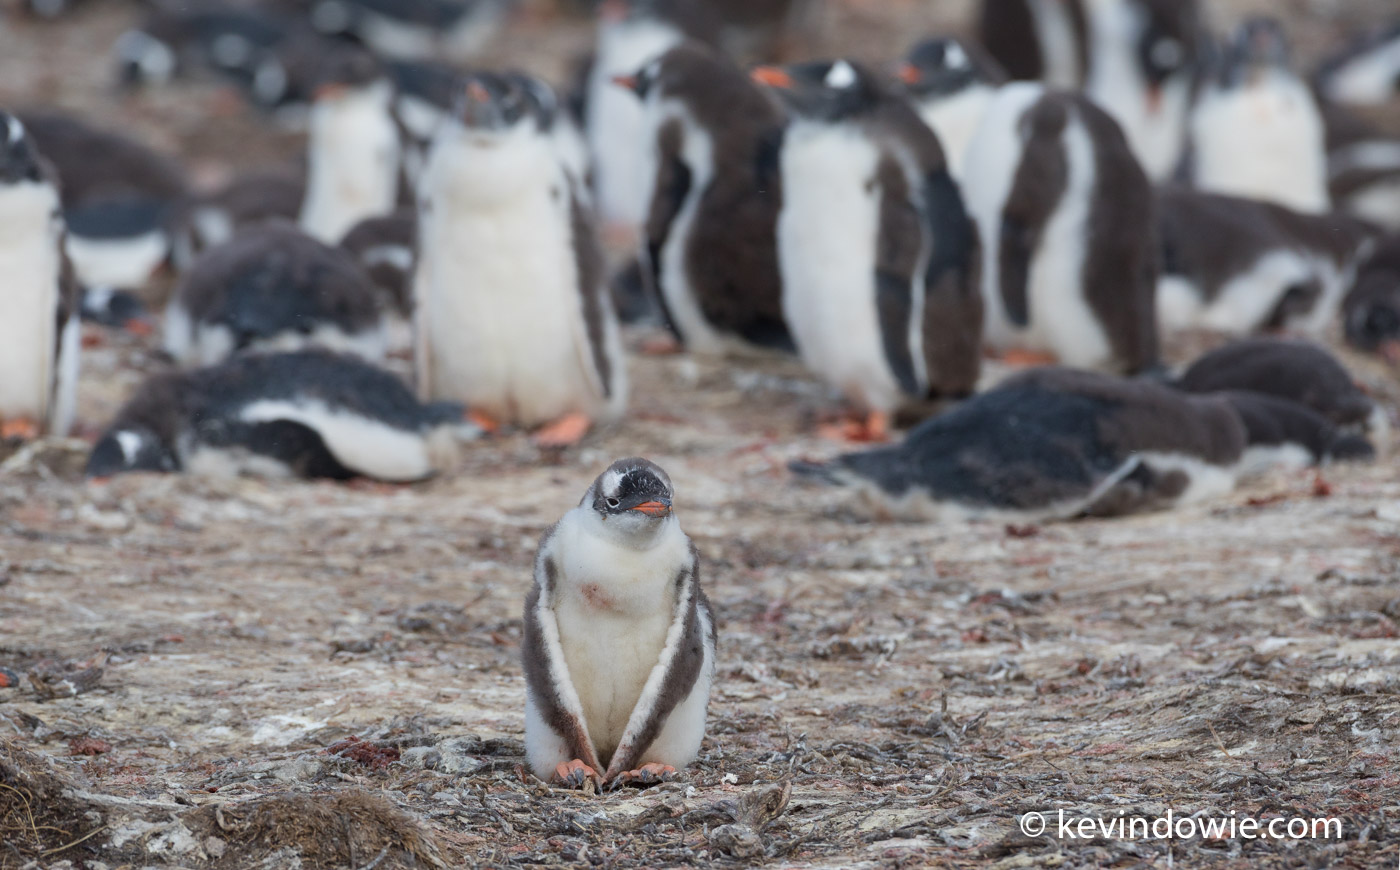 A Gentoo Penguin chick sits at the edge of a colony. Although a portrait of a single bird, the colony in the background completes the story.